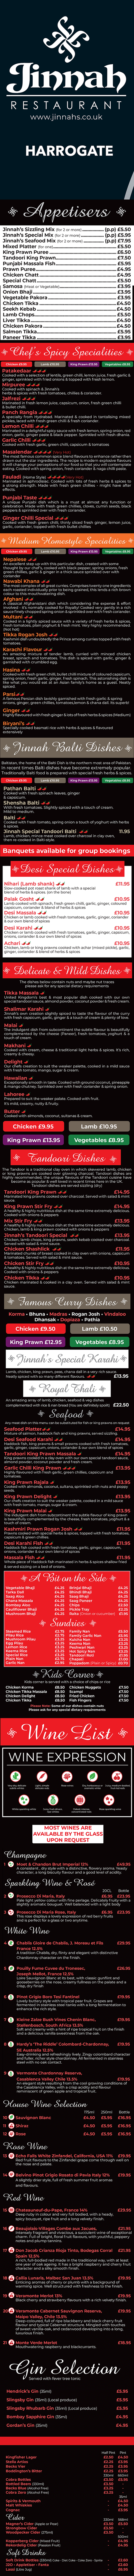 HARROGATE MENU MOBILE.png